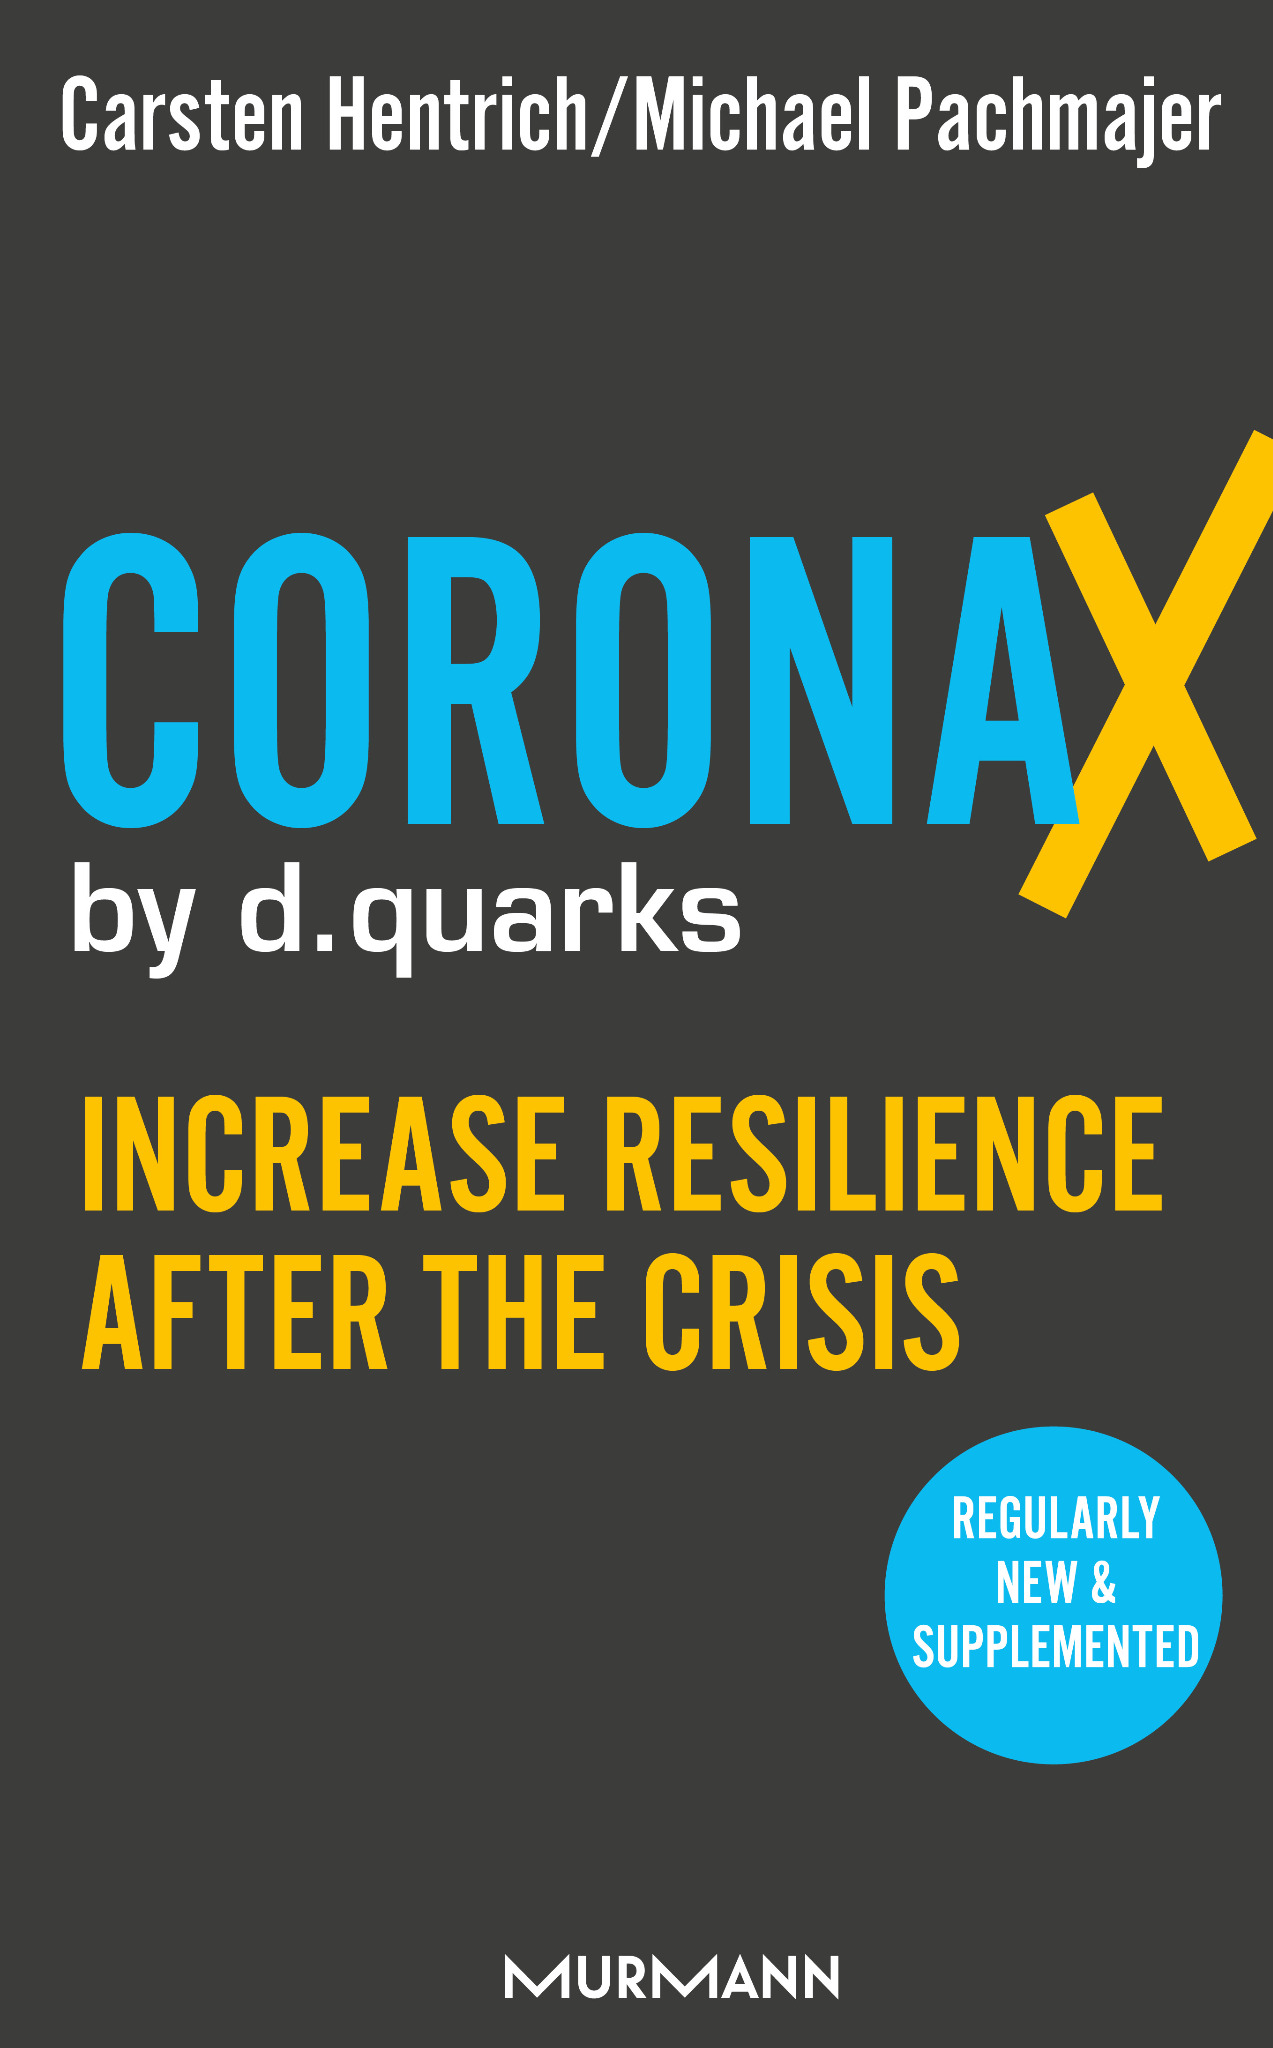 CoronaX by d.quarks (engl. version) / Michael Pachmajer, Carsten Hentrich (introduction)